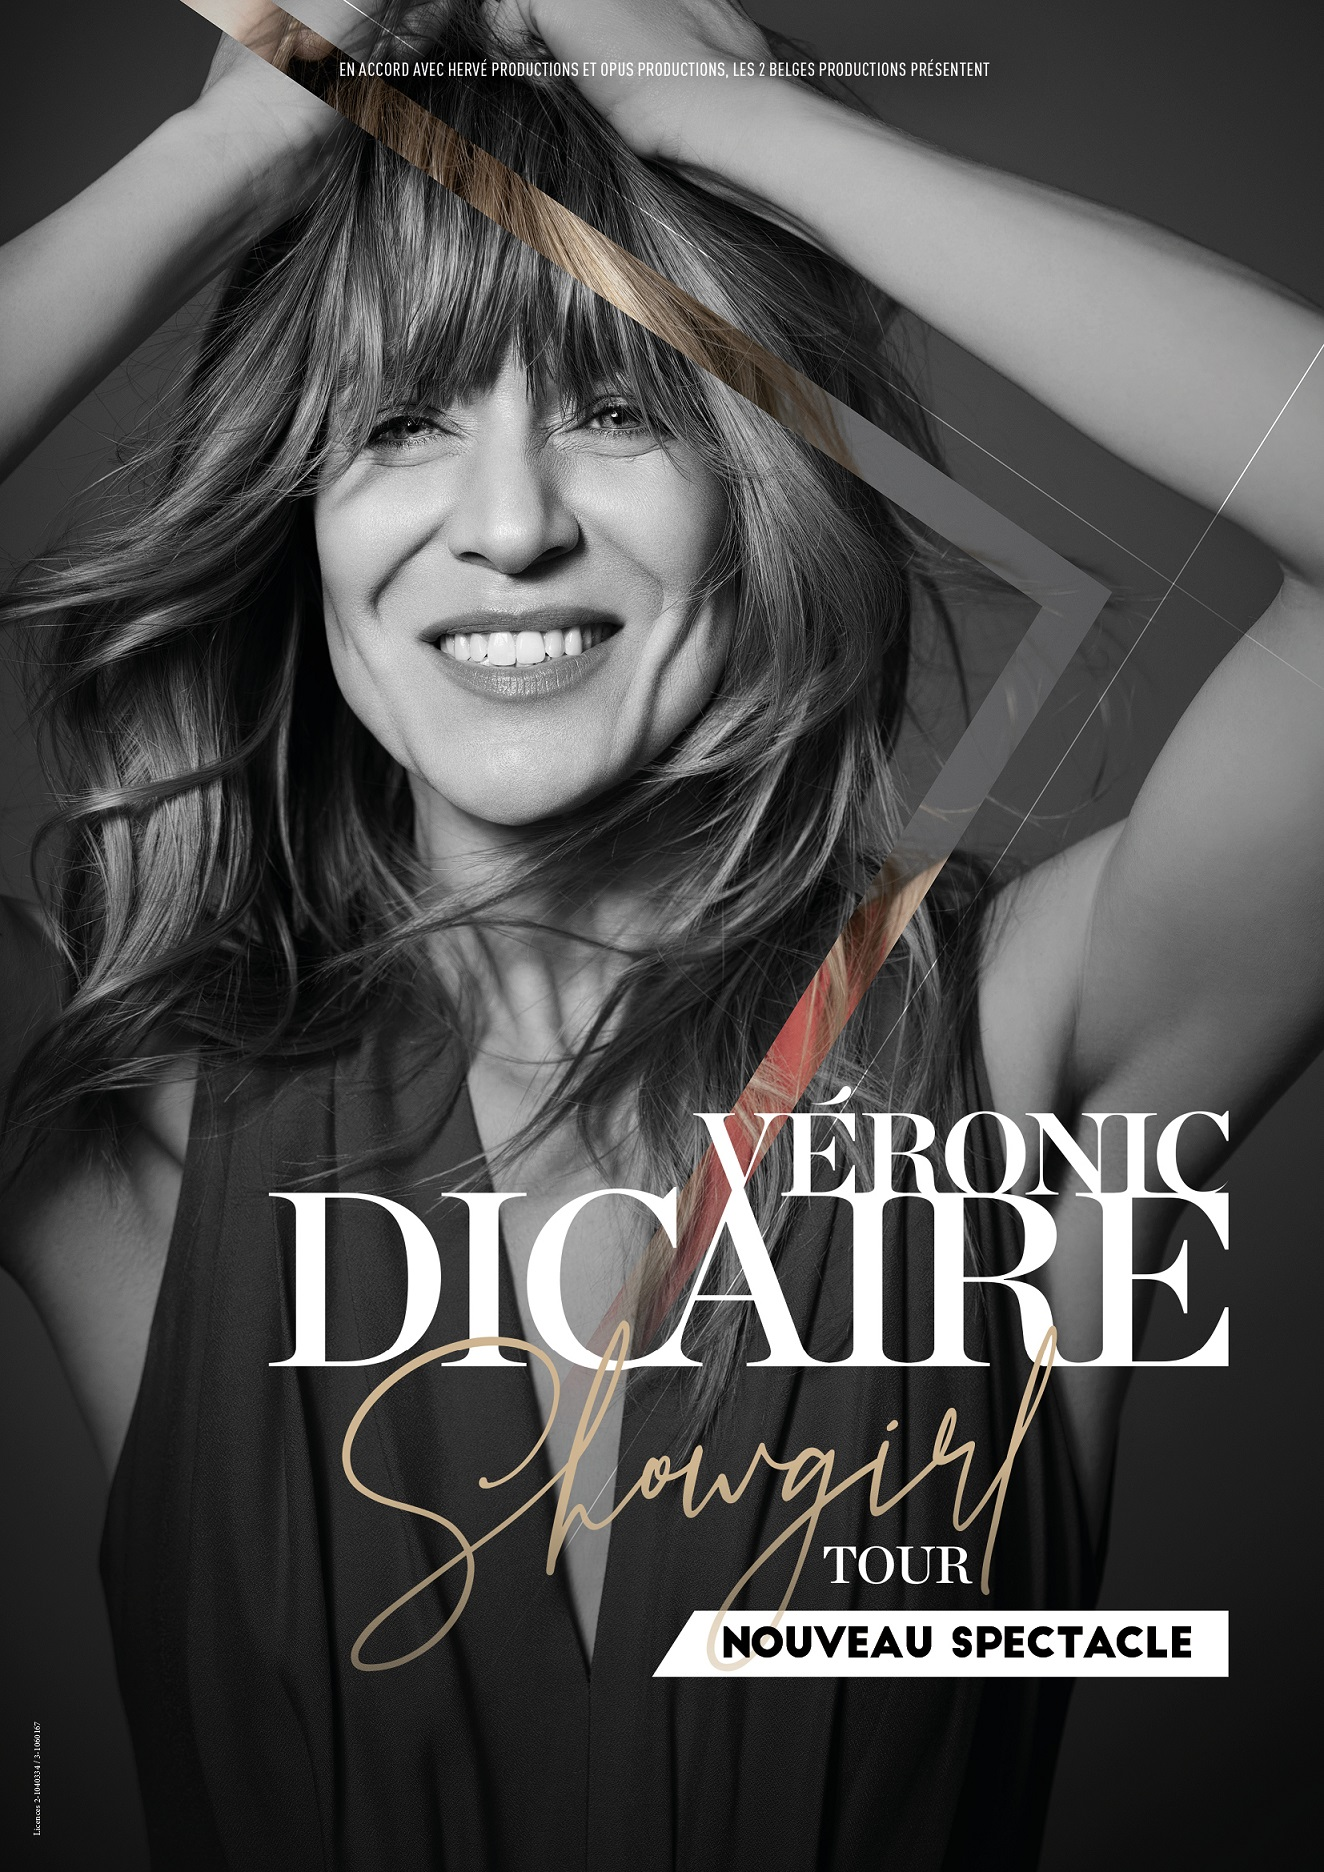 VERONIC-DICAIRE-2